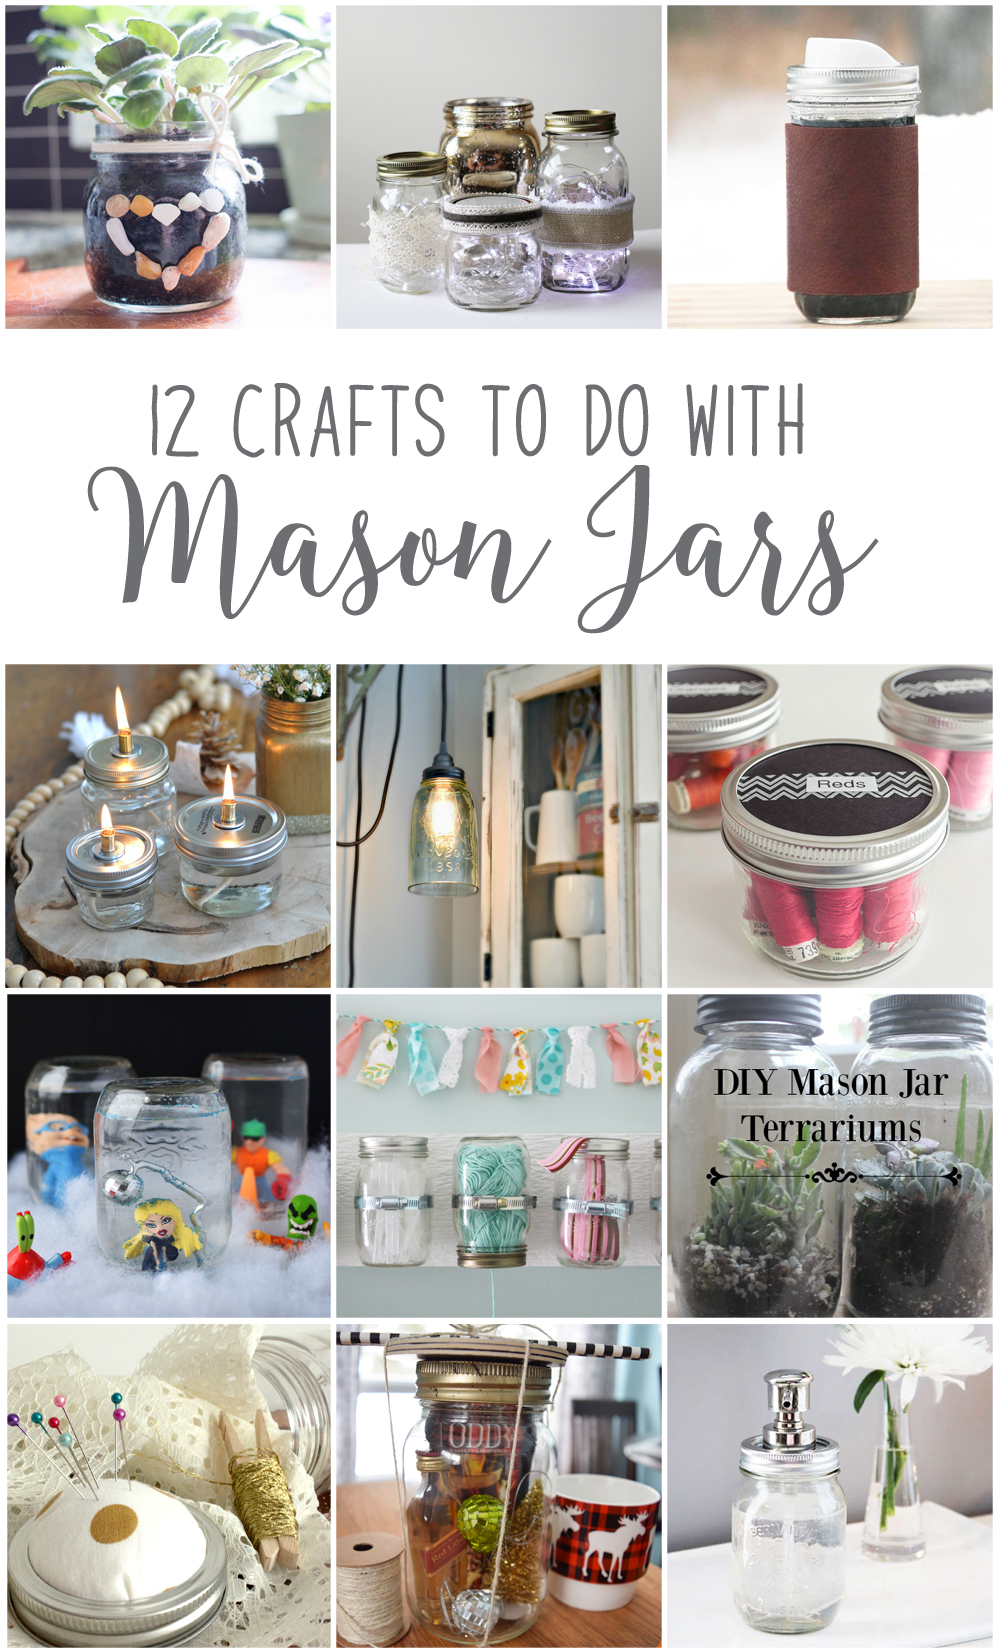 Enjoy 12 great DIY and home decor projects using Mason jars from Canadian bloggers for hte #12monthsofDIY challenge - SustainMyCraftHabit